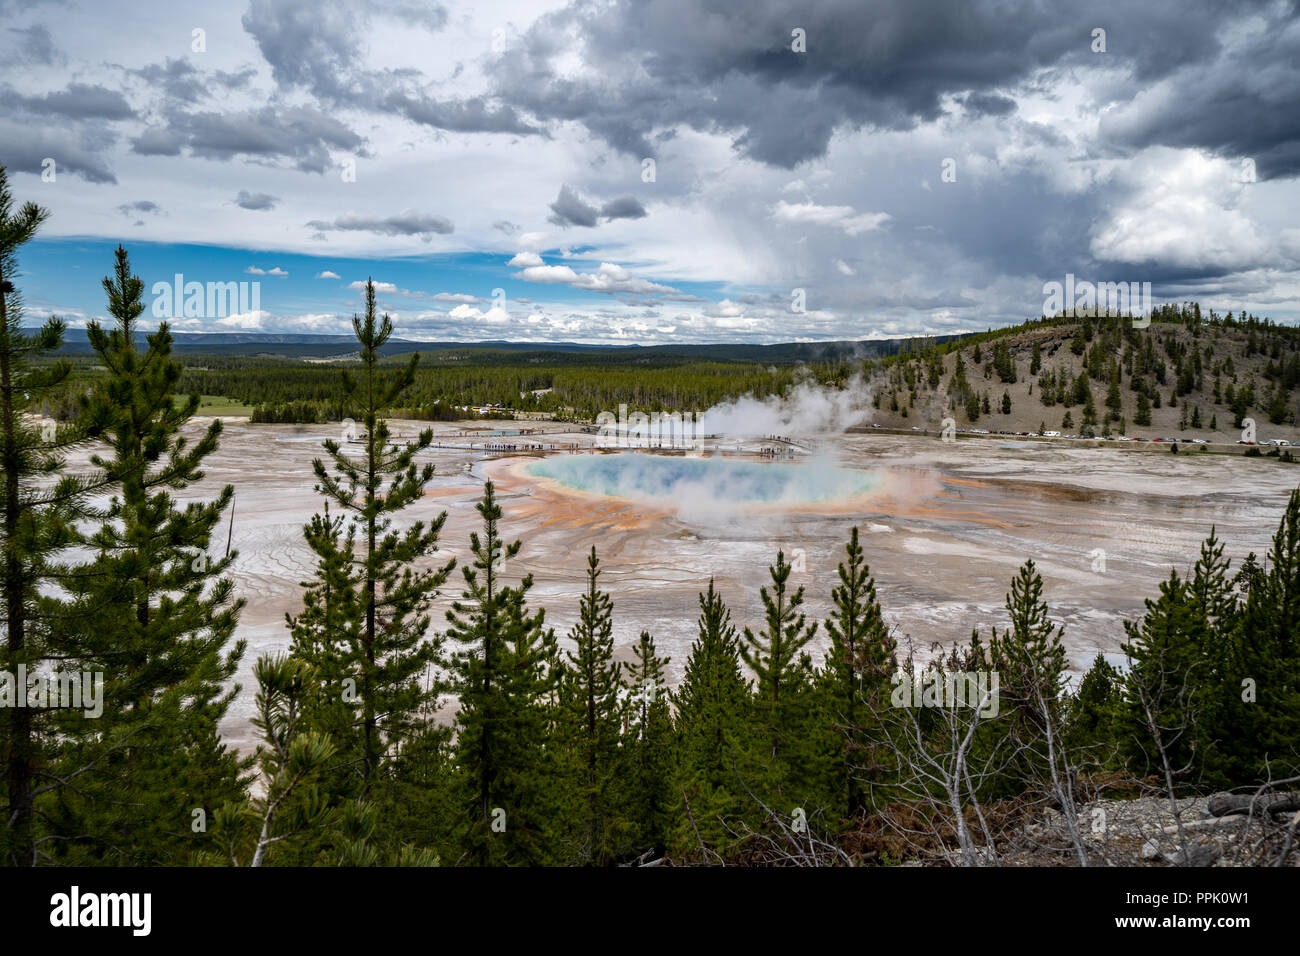 Grand Prismatic Spring in Yellowstone National Park, as seen from the Fairy Falls trail overlook, showing the hot spring's rainbow of colors. Trees fr - Stock Image